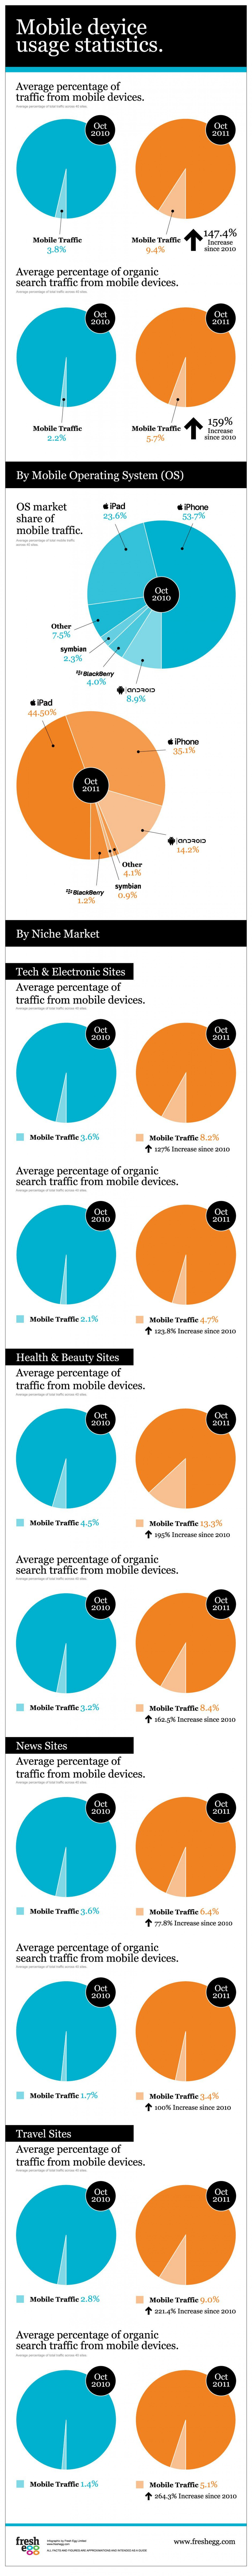 Mobile Traffic Statistics Infographic